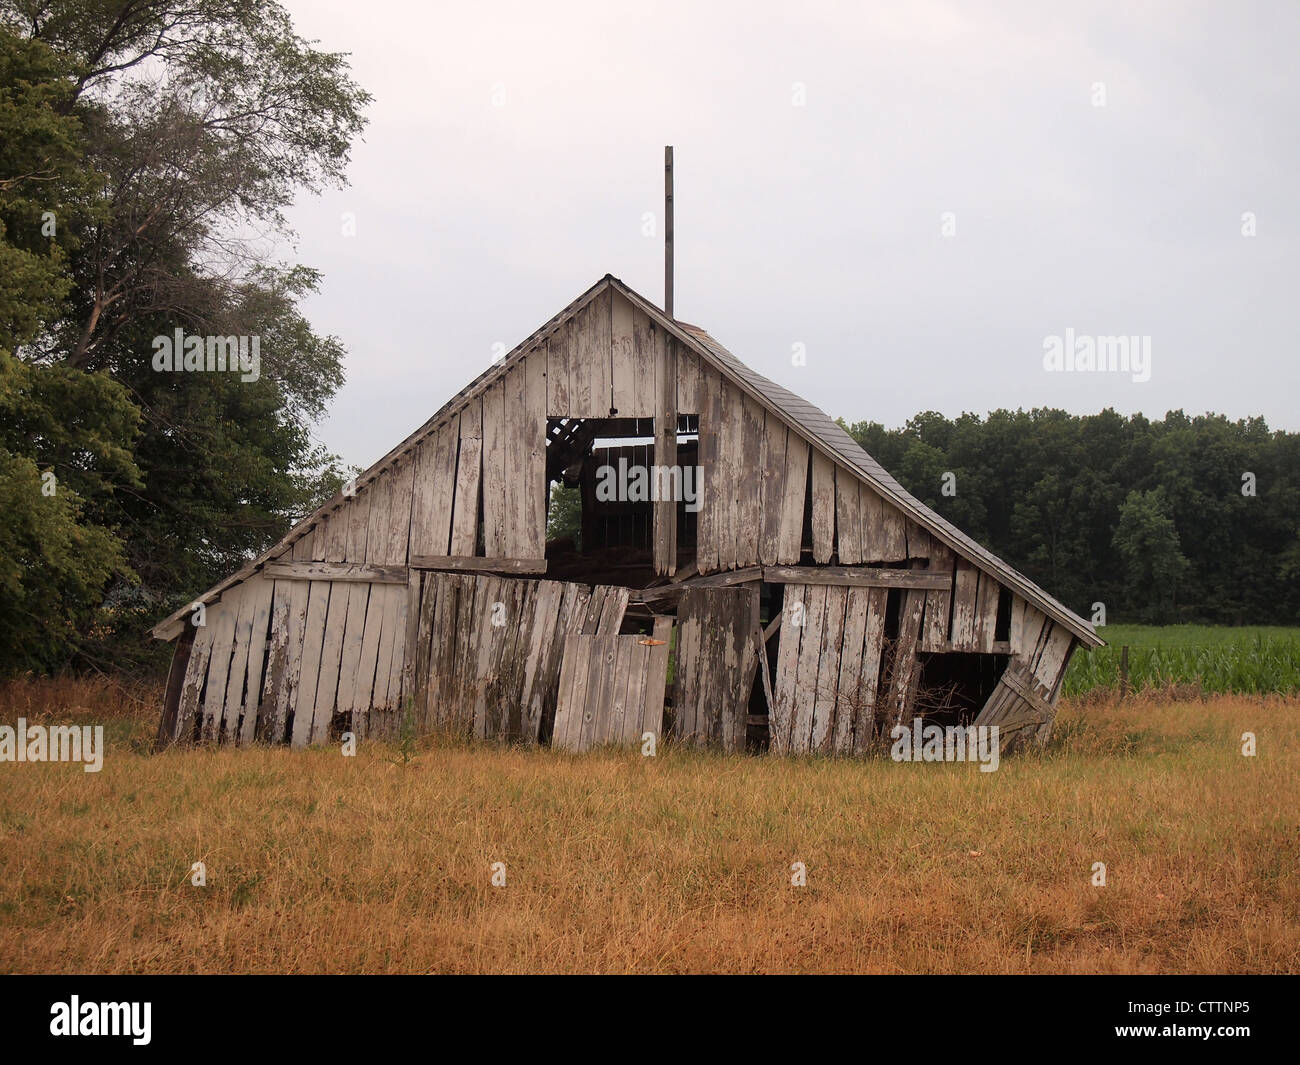 Abandoned and neglected barn in Johnson County, Indiana, USA, July 8, 2012, © Katharine Andriotis - Stock Image